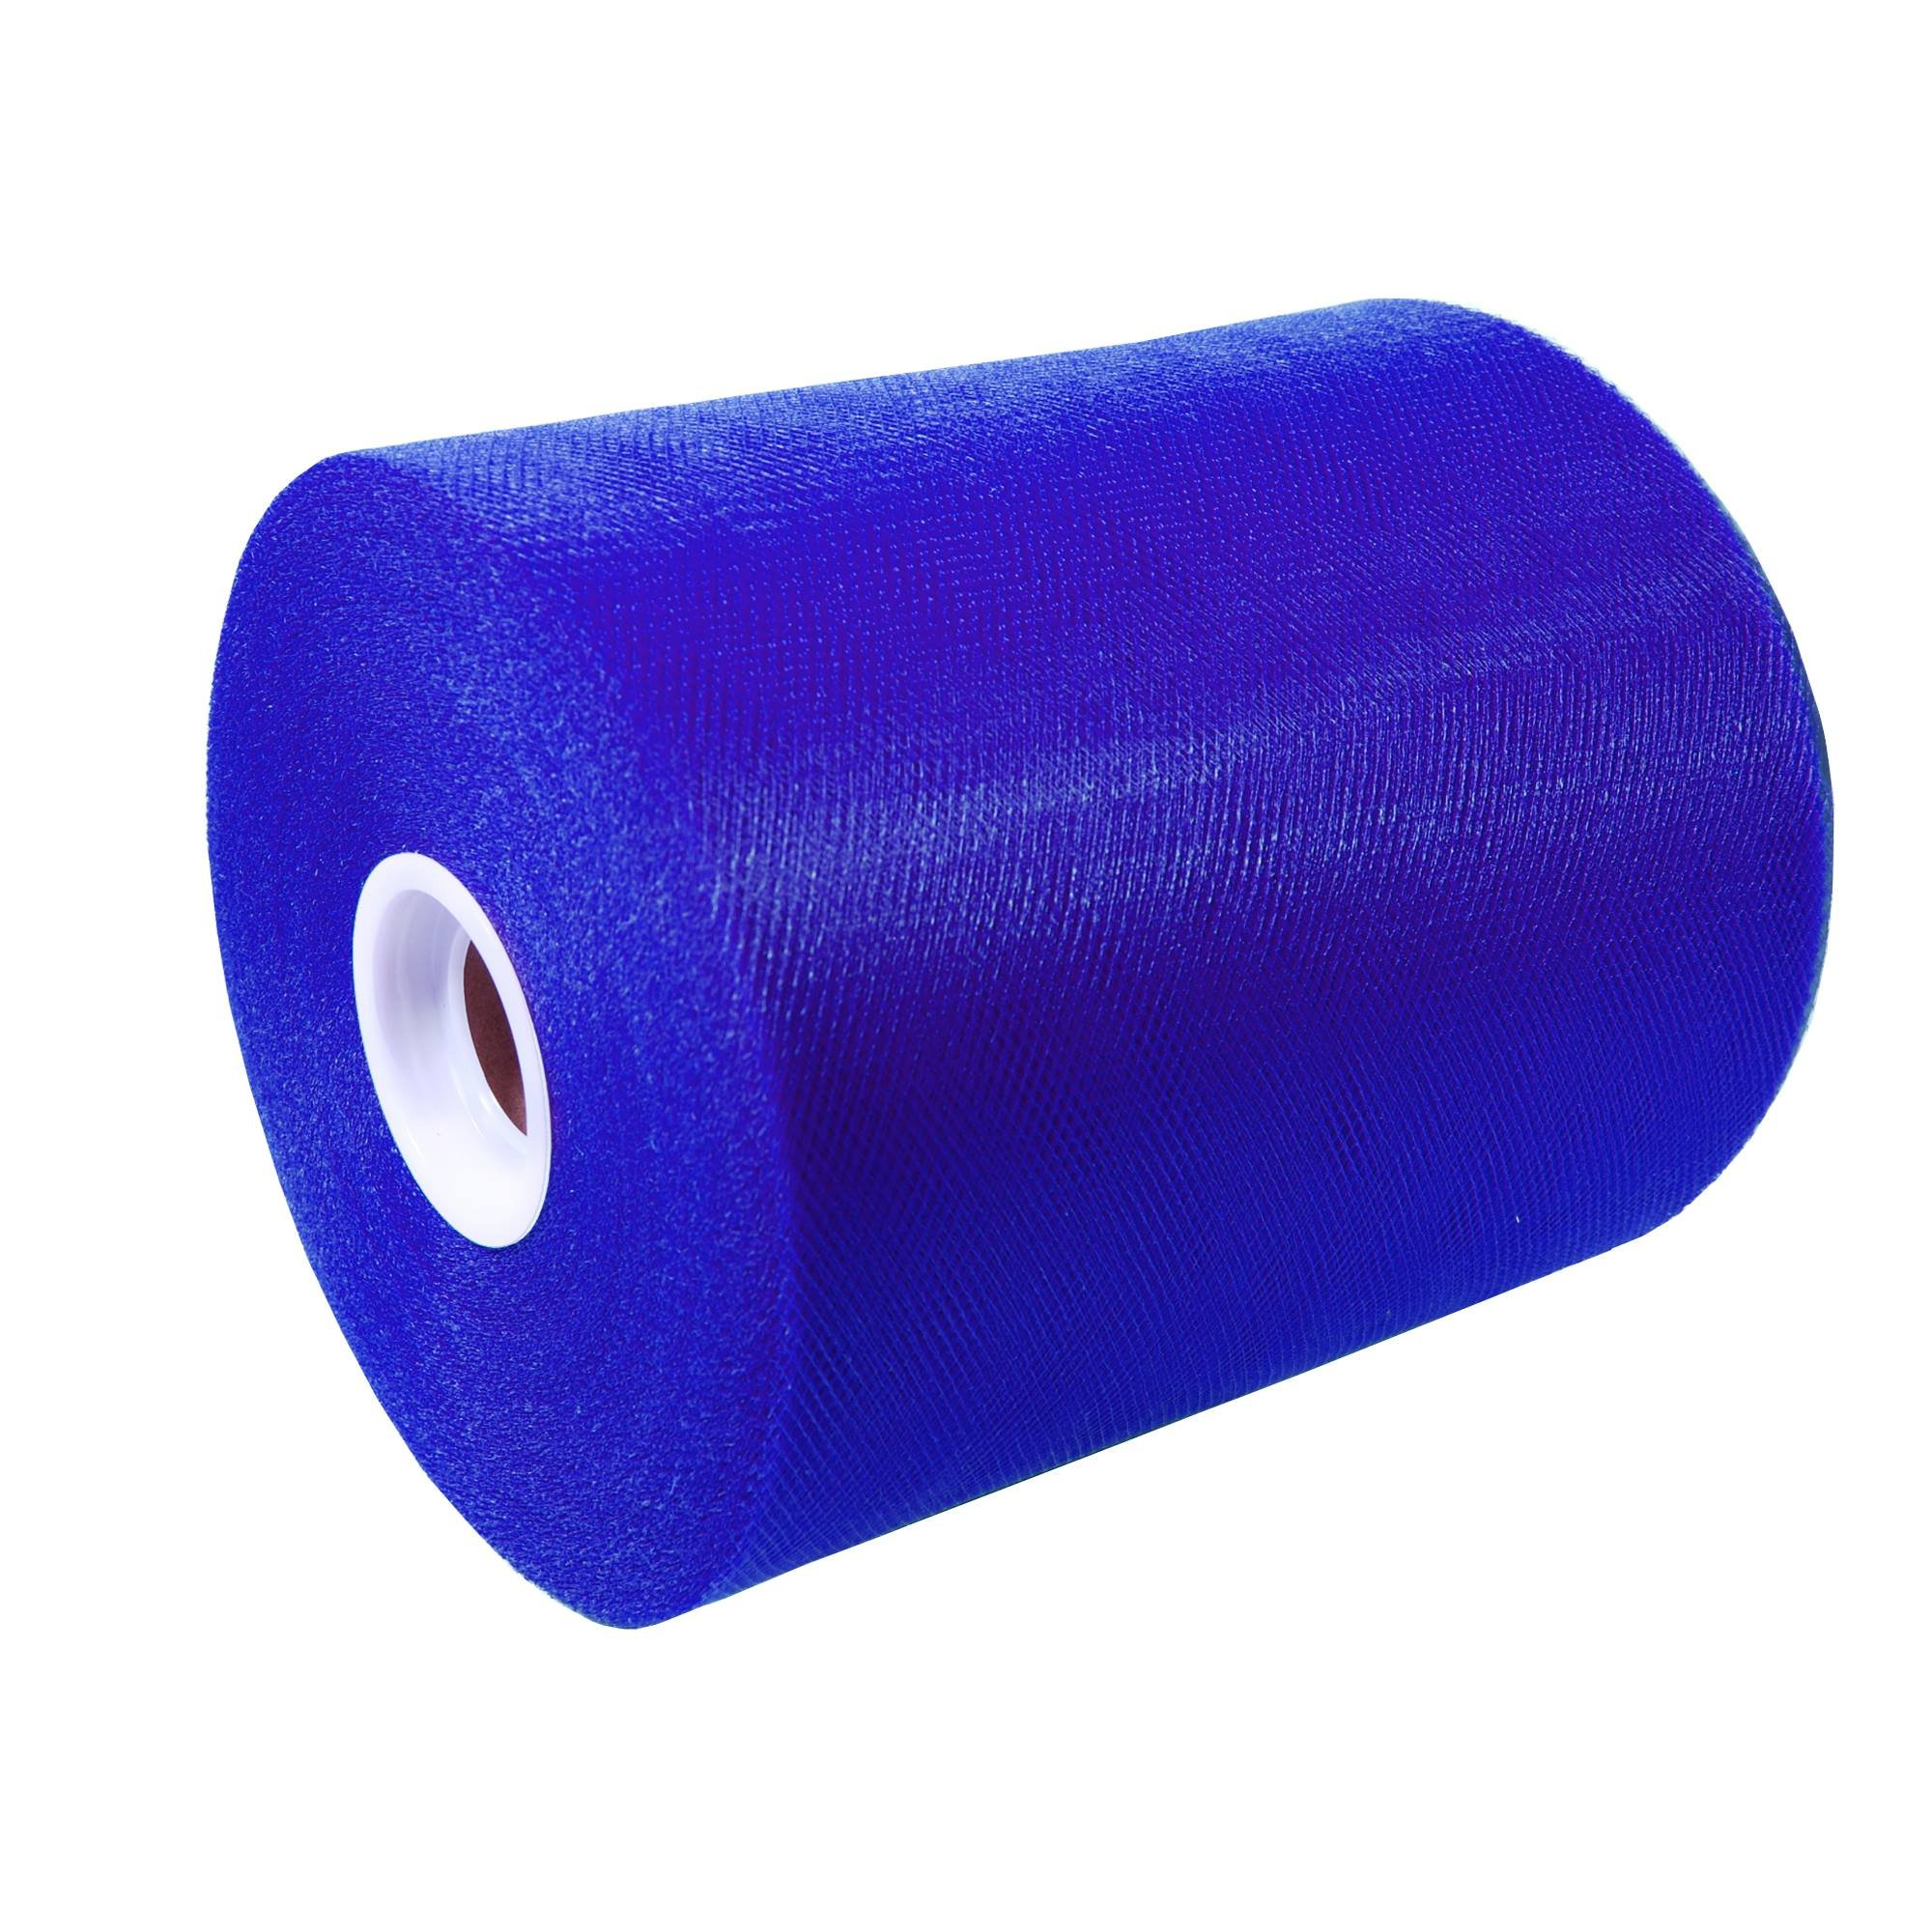 Craft and Party, 6'' by 200 yards (600 ft) fabric tulle spool for wedding and decoration. Value pack. (Royal Blue)